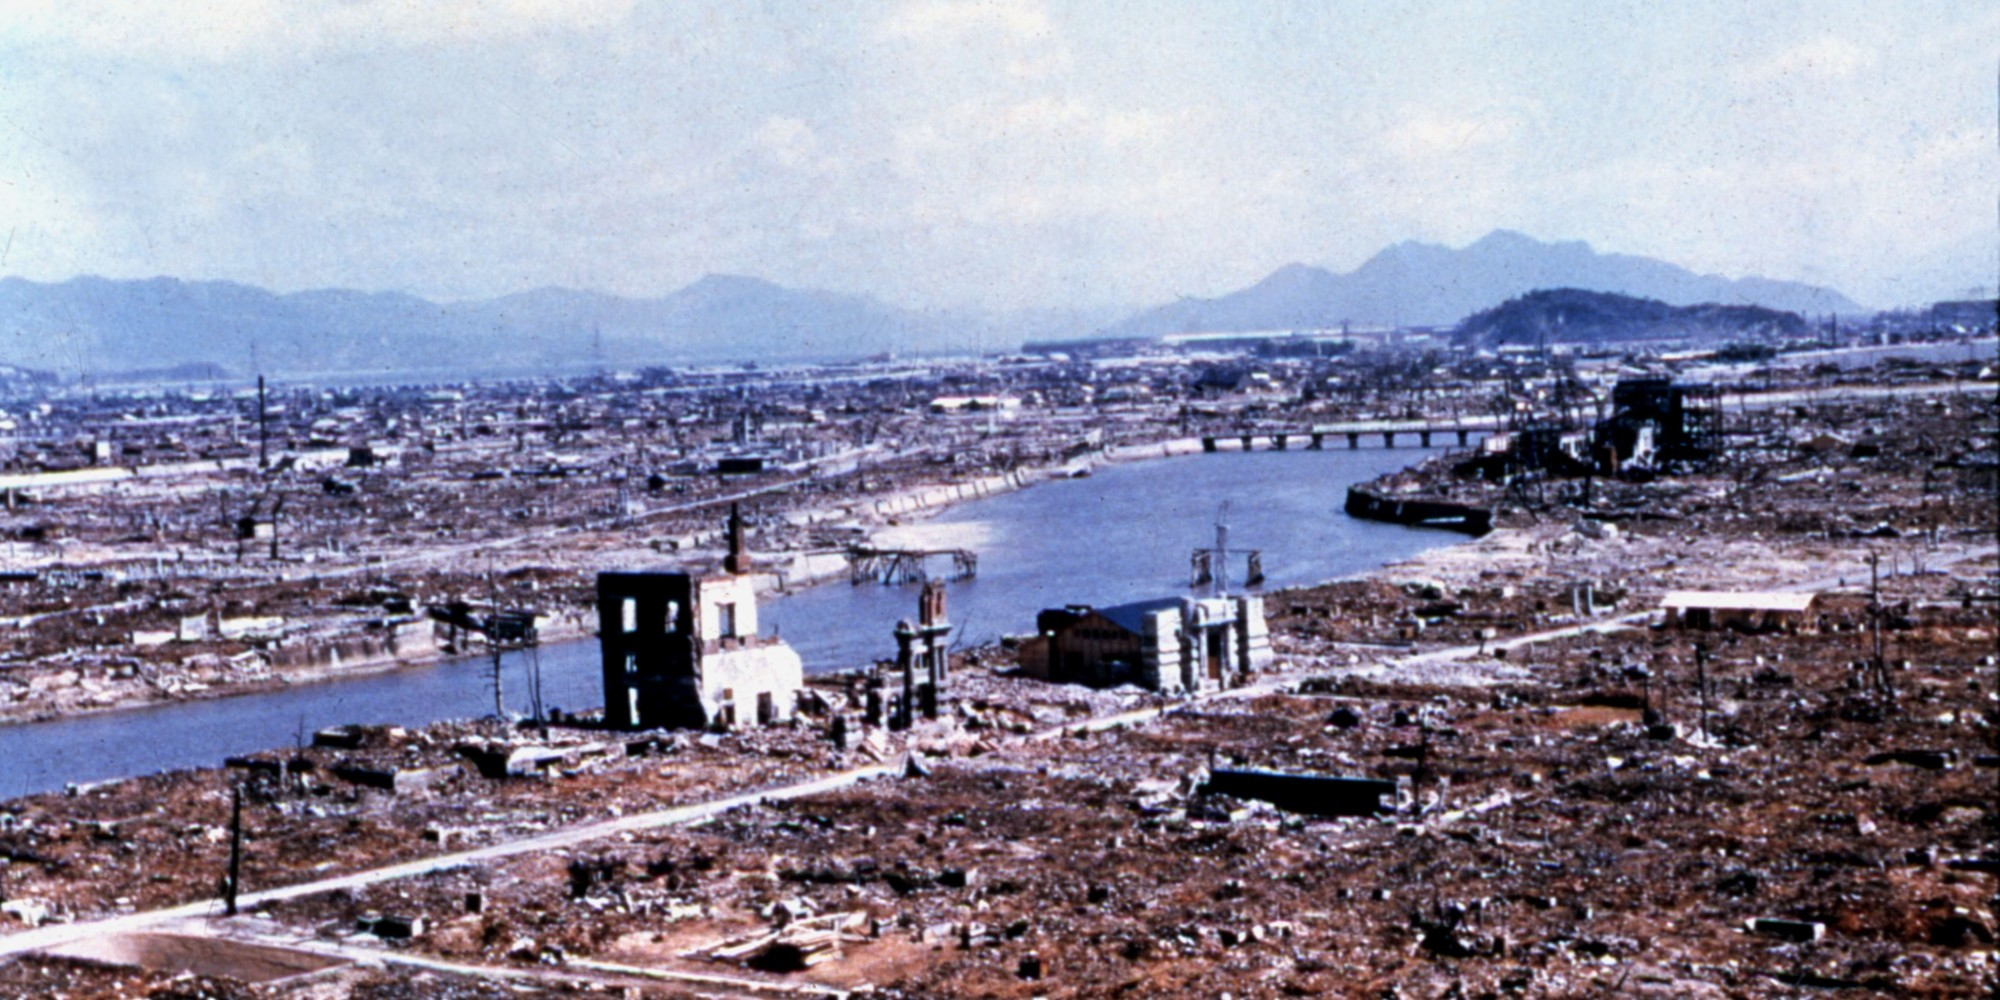 atomic bombing of hiroshima The atomic bombings of hiroshima and nagasaki by the manhattan engineer district, june 29, 1946 total casualties there has been great difficulty in estimating the total casualties in the japanese cities as a result of the atomic bombing the extensive destruction of civil installations.